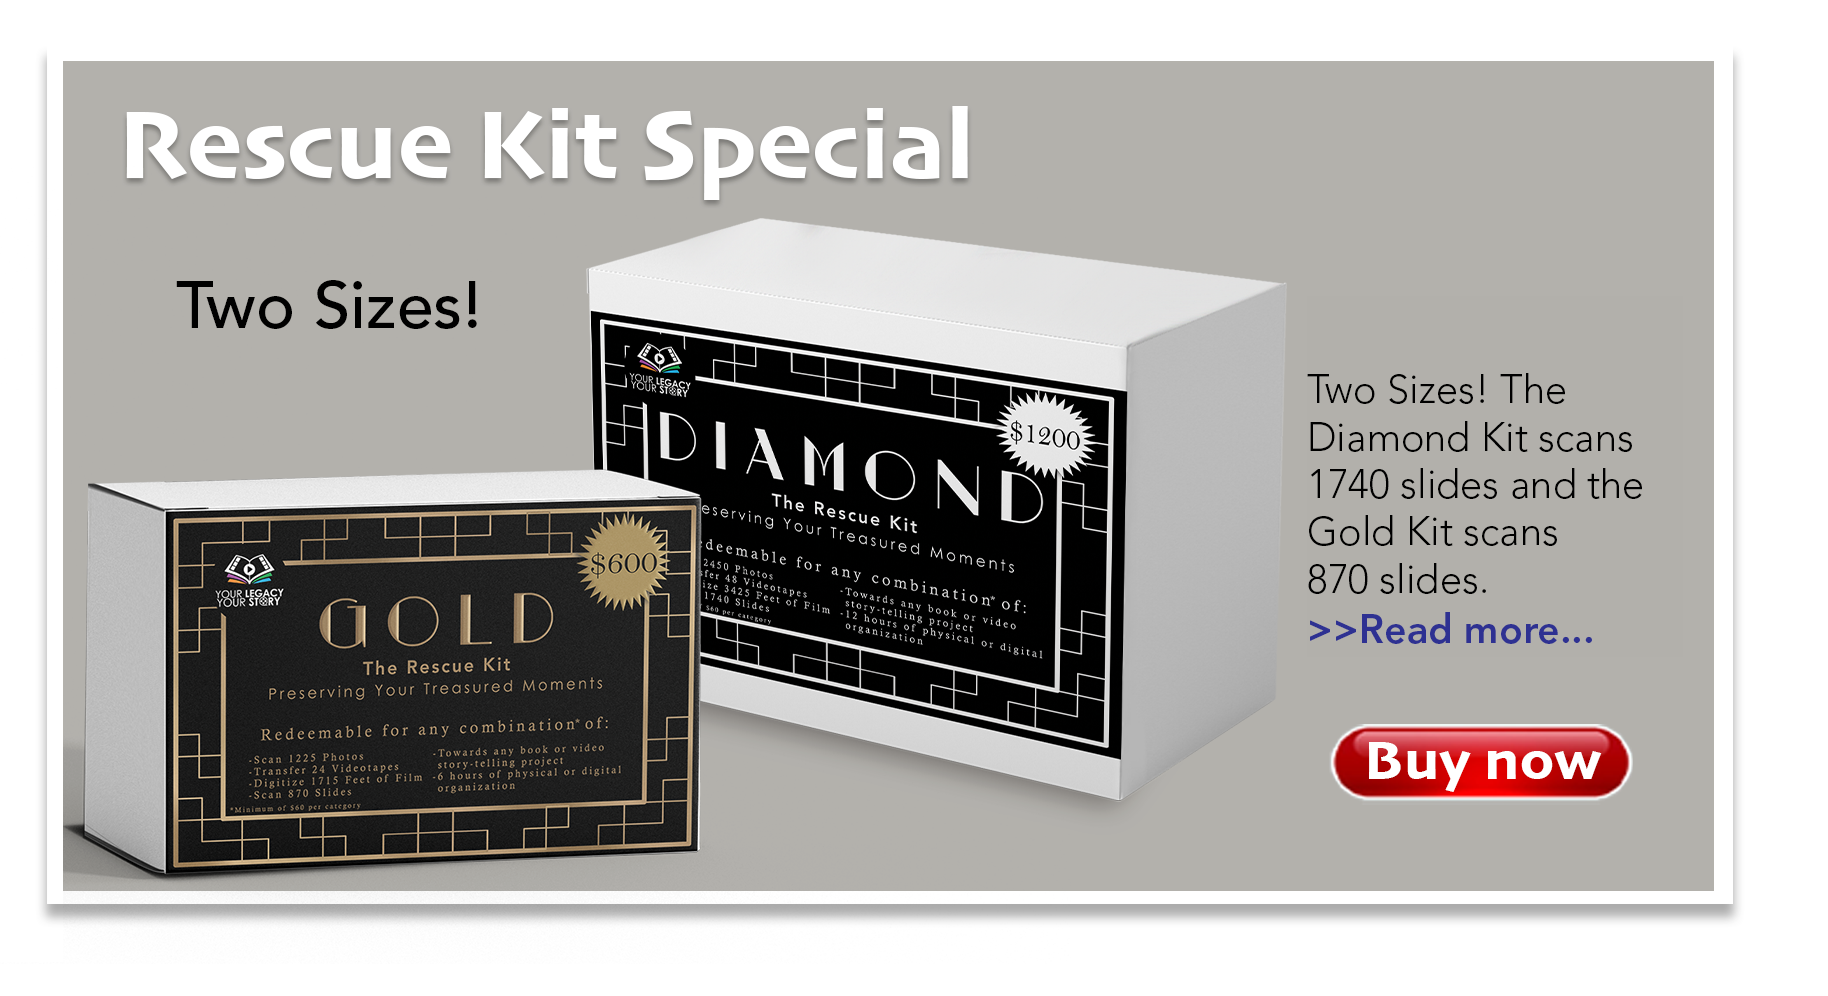 Two Sizes! The Diamond Kit scans 1740 slides and the Gold Kit scans 870 slides.